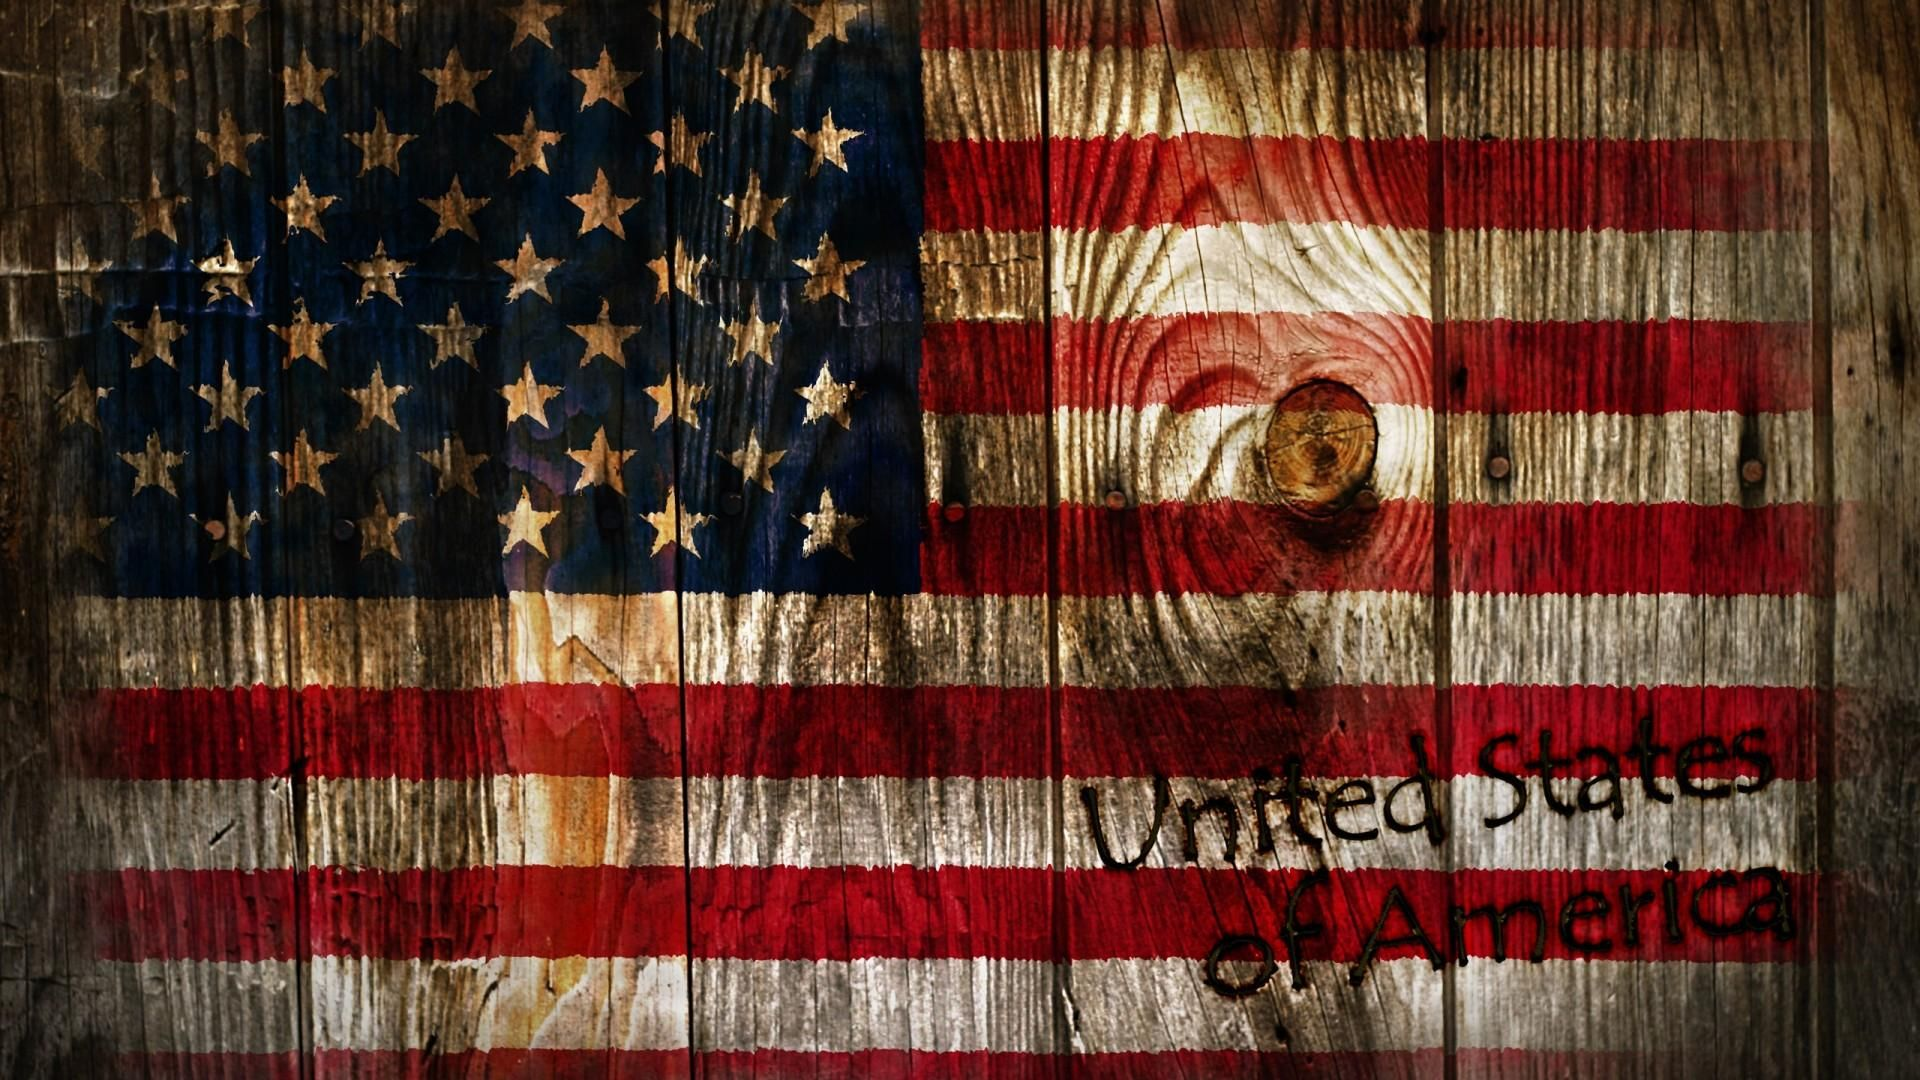 Free Pictures, Free Pics, American Flag Wallpaper, Patriotic Wallpaper, American Freedom,